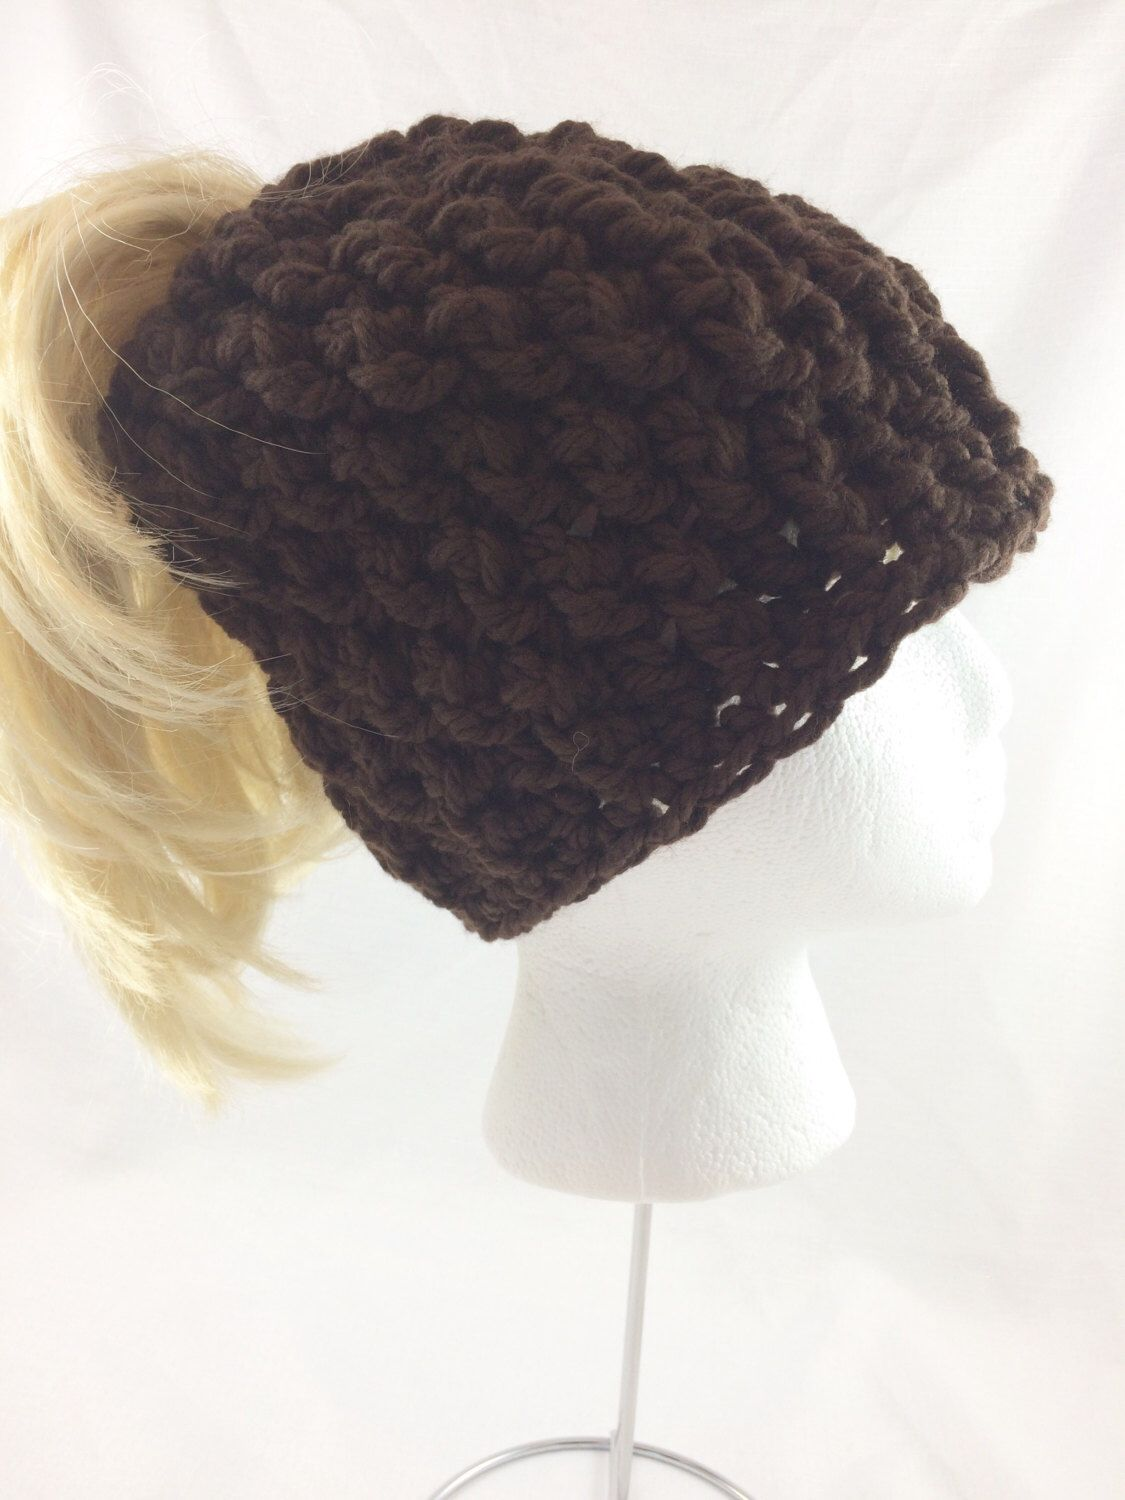 1872029ae3b24 Gifts For Women · Ponytail · My Etsy Shop · Chocolate brown ponytail hat  https   www.etsy.com ca